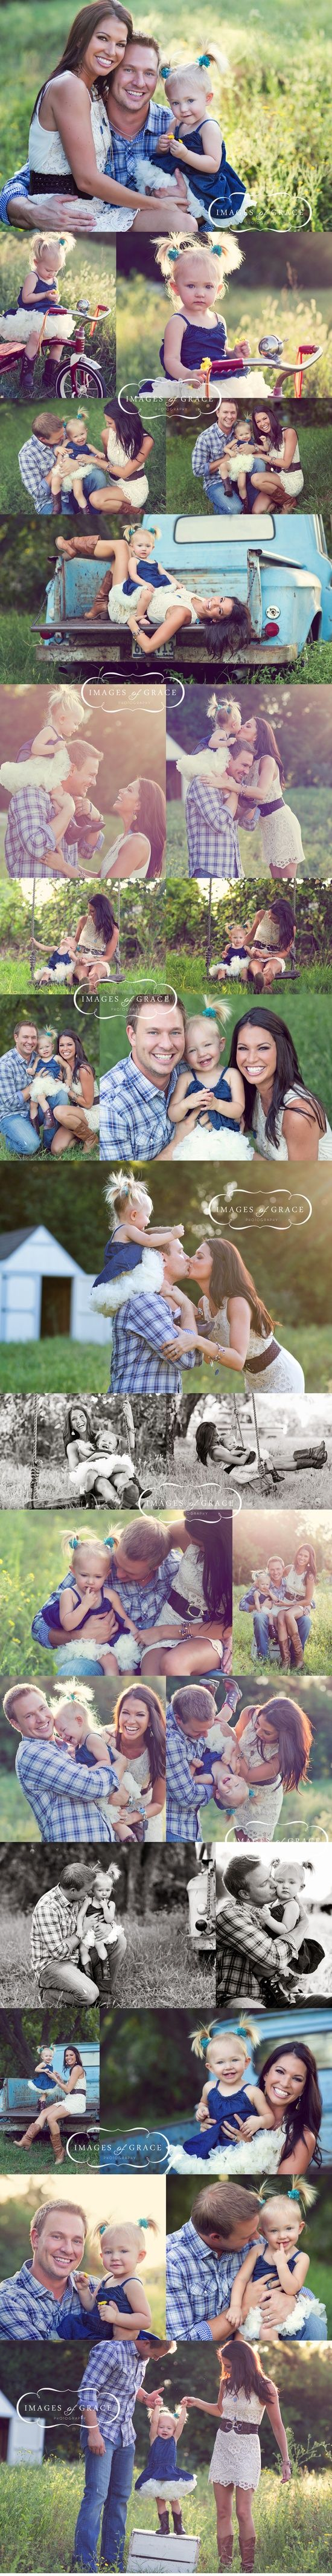 Adorable family photos love melissa rycroft Honestly can their